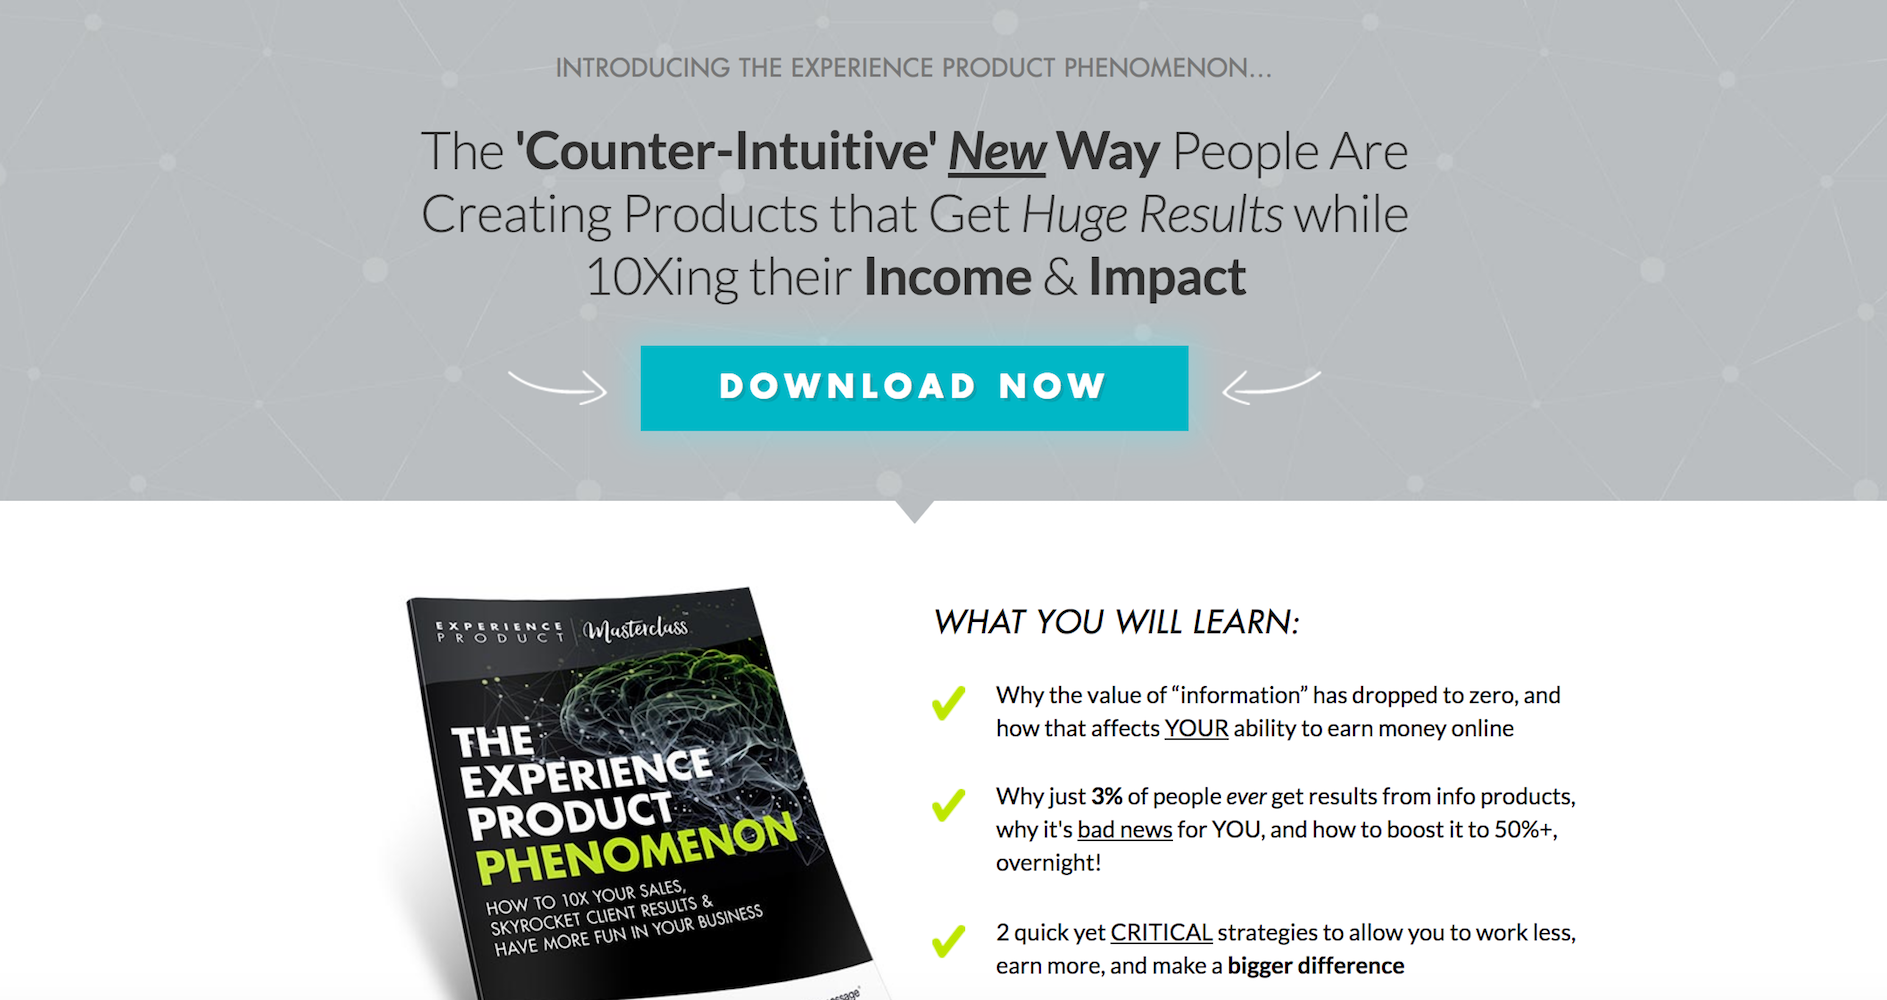 Experience Product Masterclass by Marisa Murgatroyd Free Report